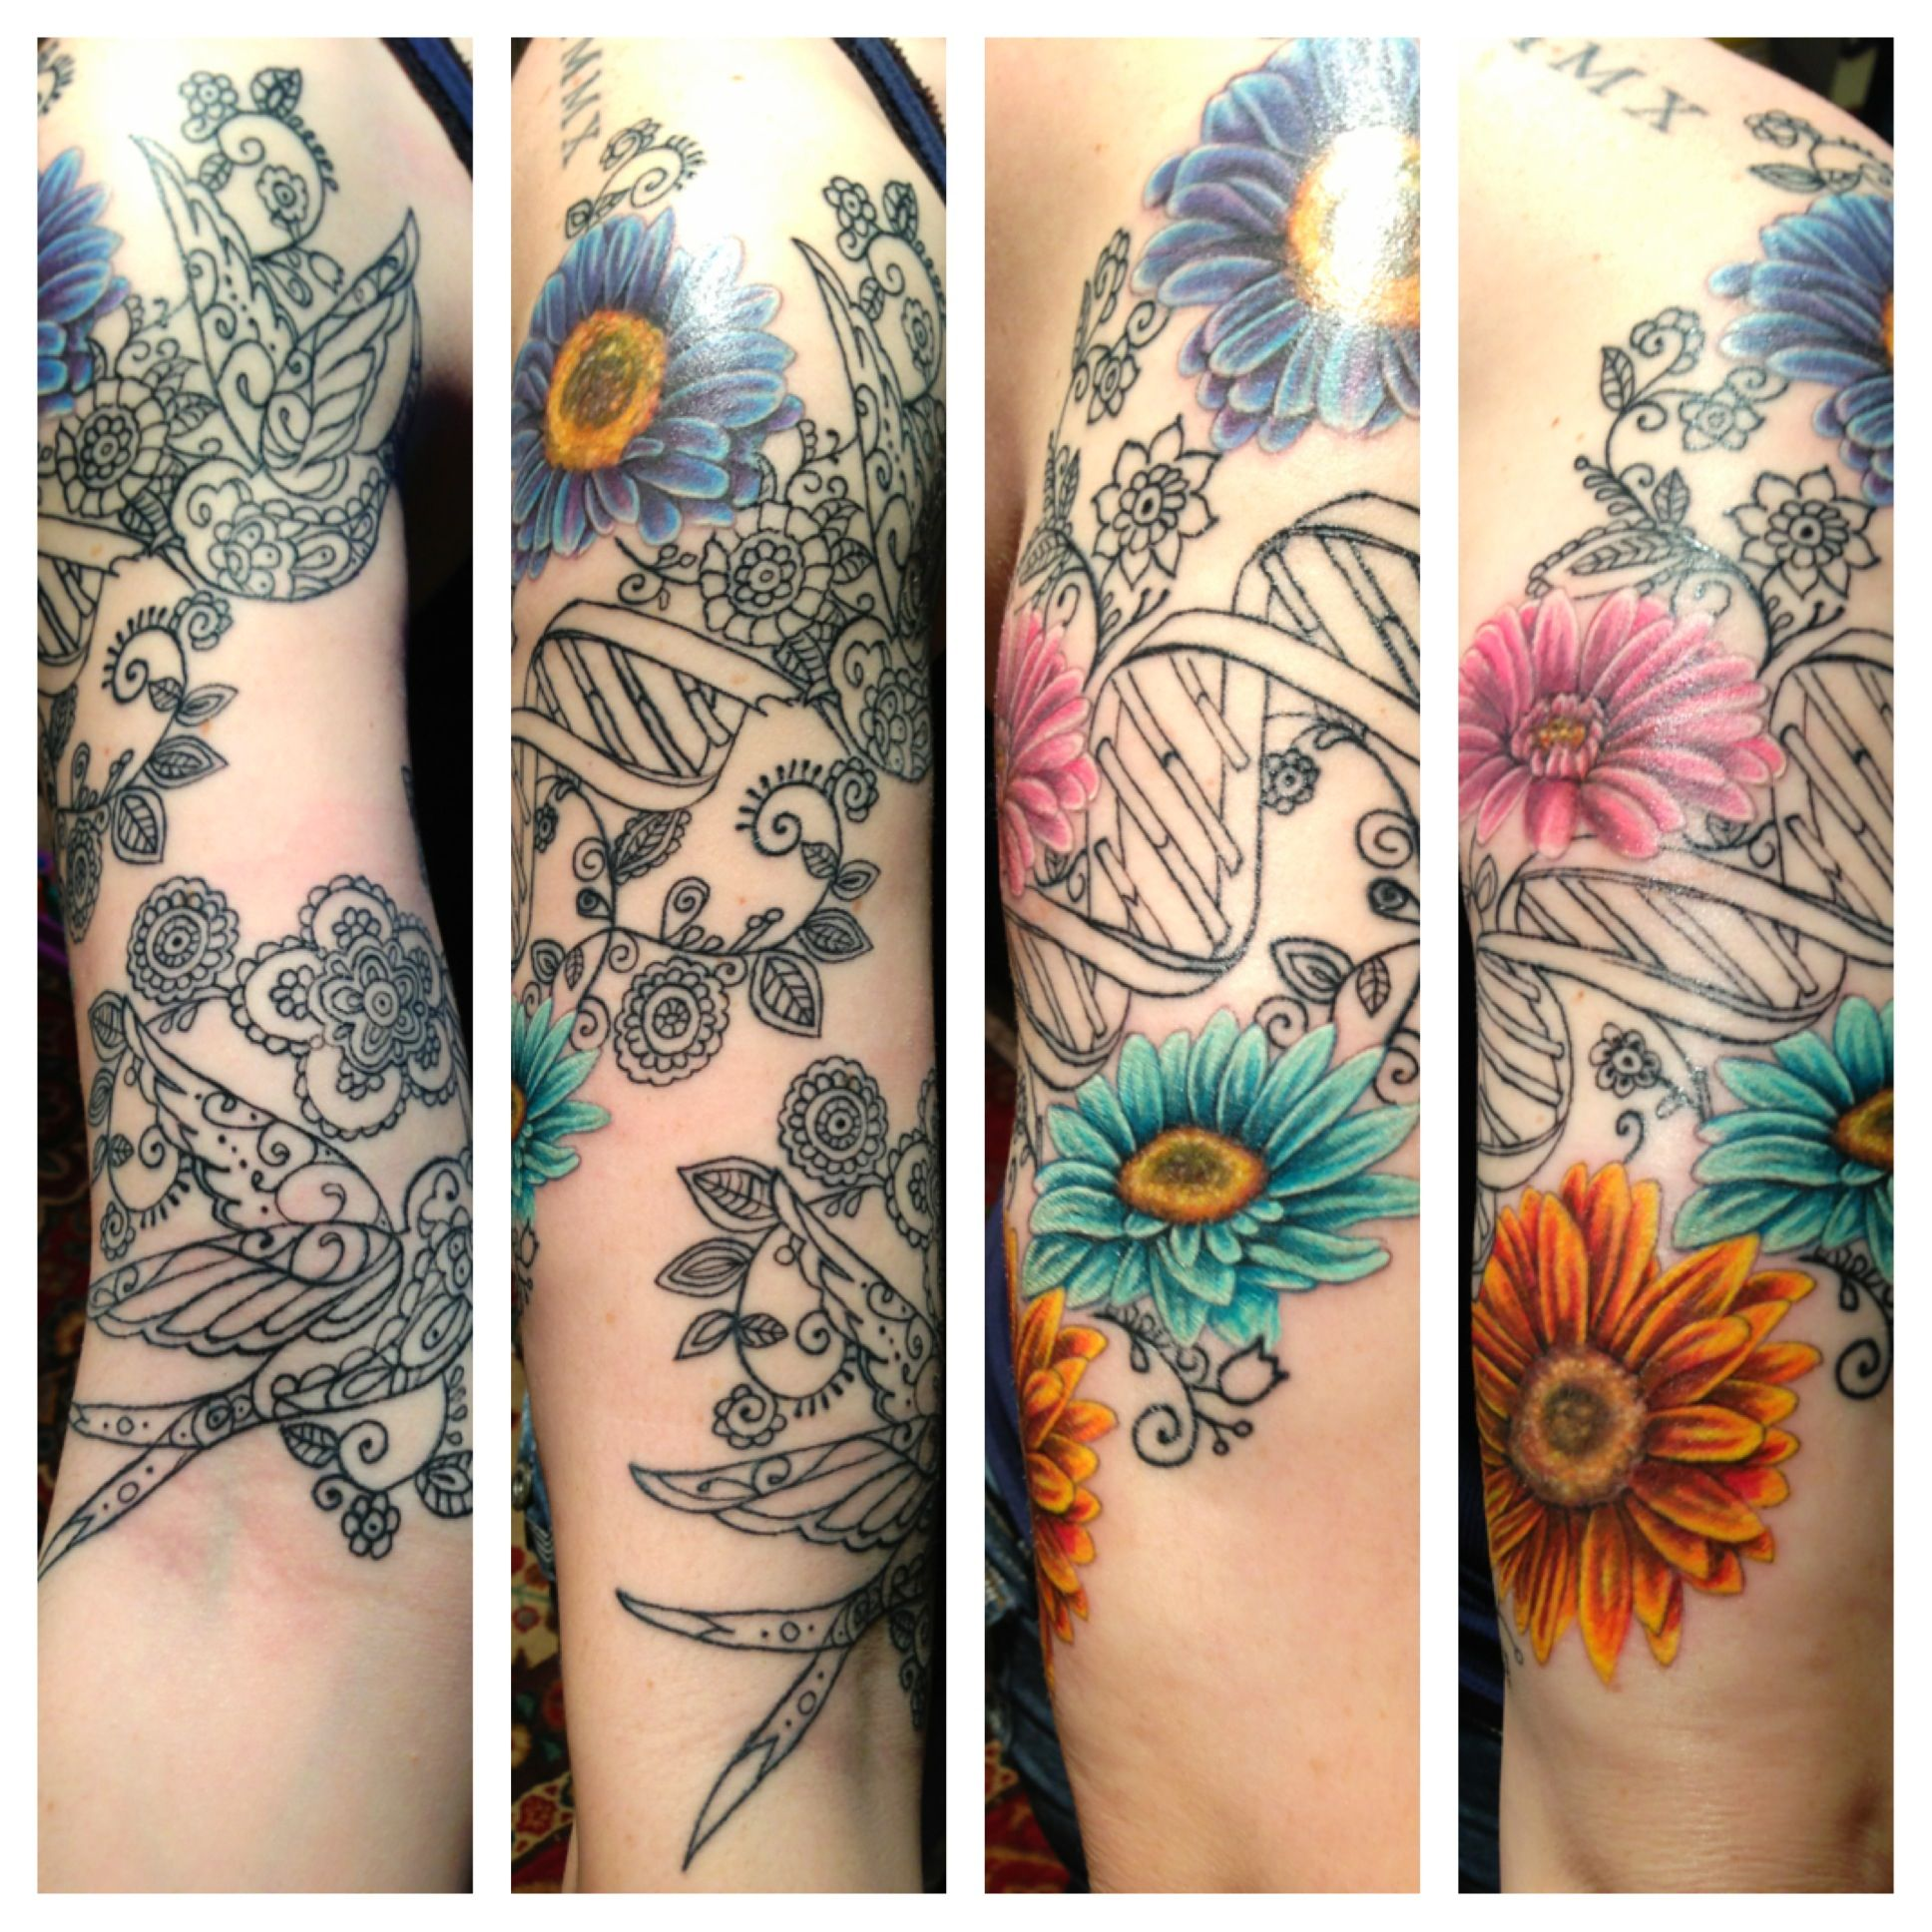 Half sleeve Sparrows, DNA, && Daisies. Artist Jaqui